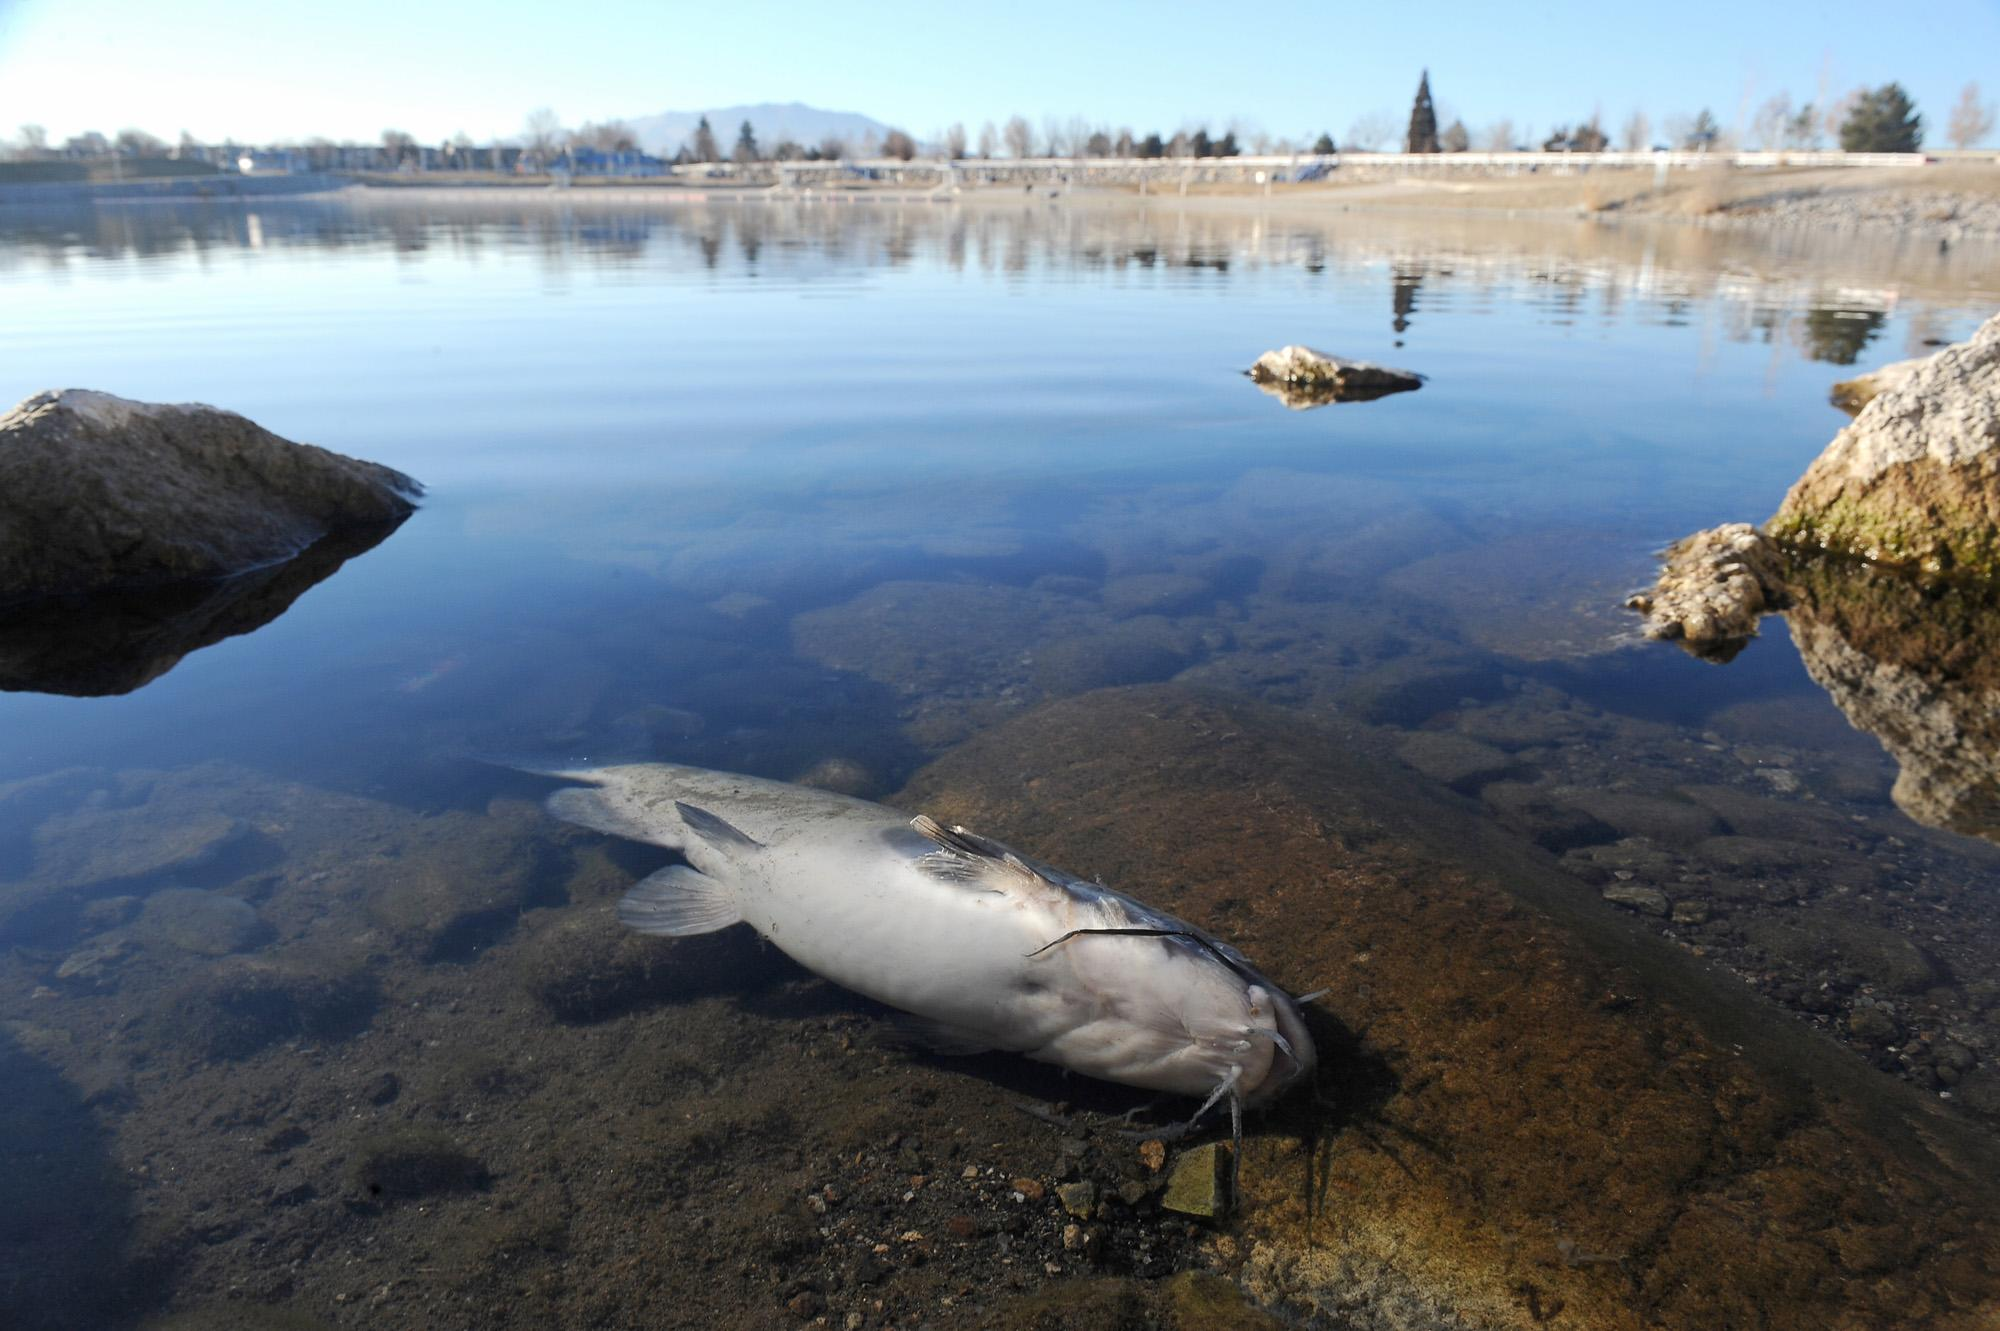 Thousands of fish dead in nevada marina mystery for Fish springs nevada